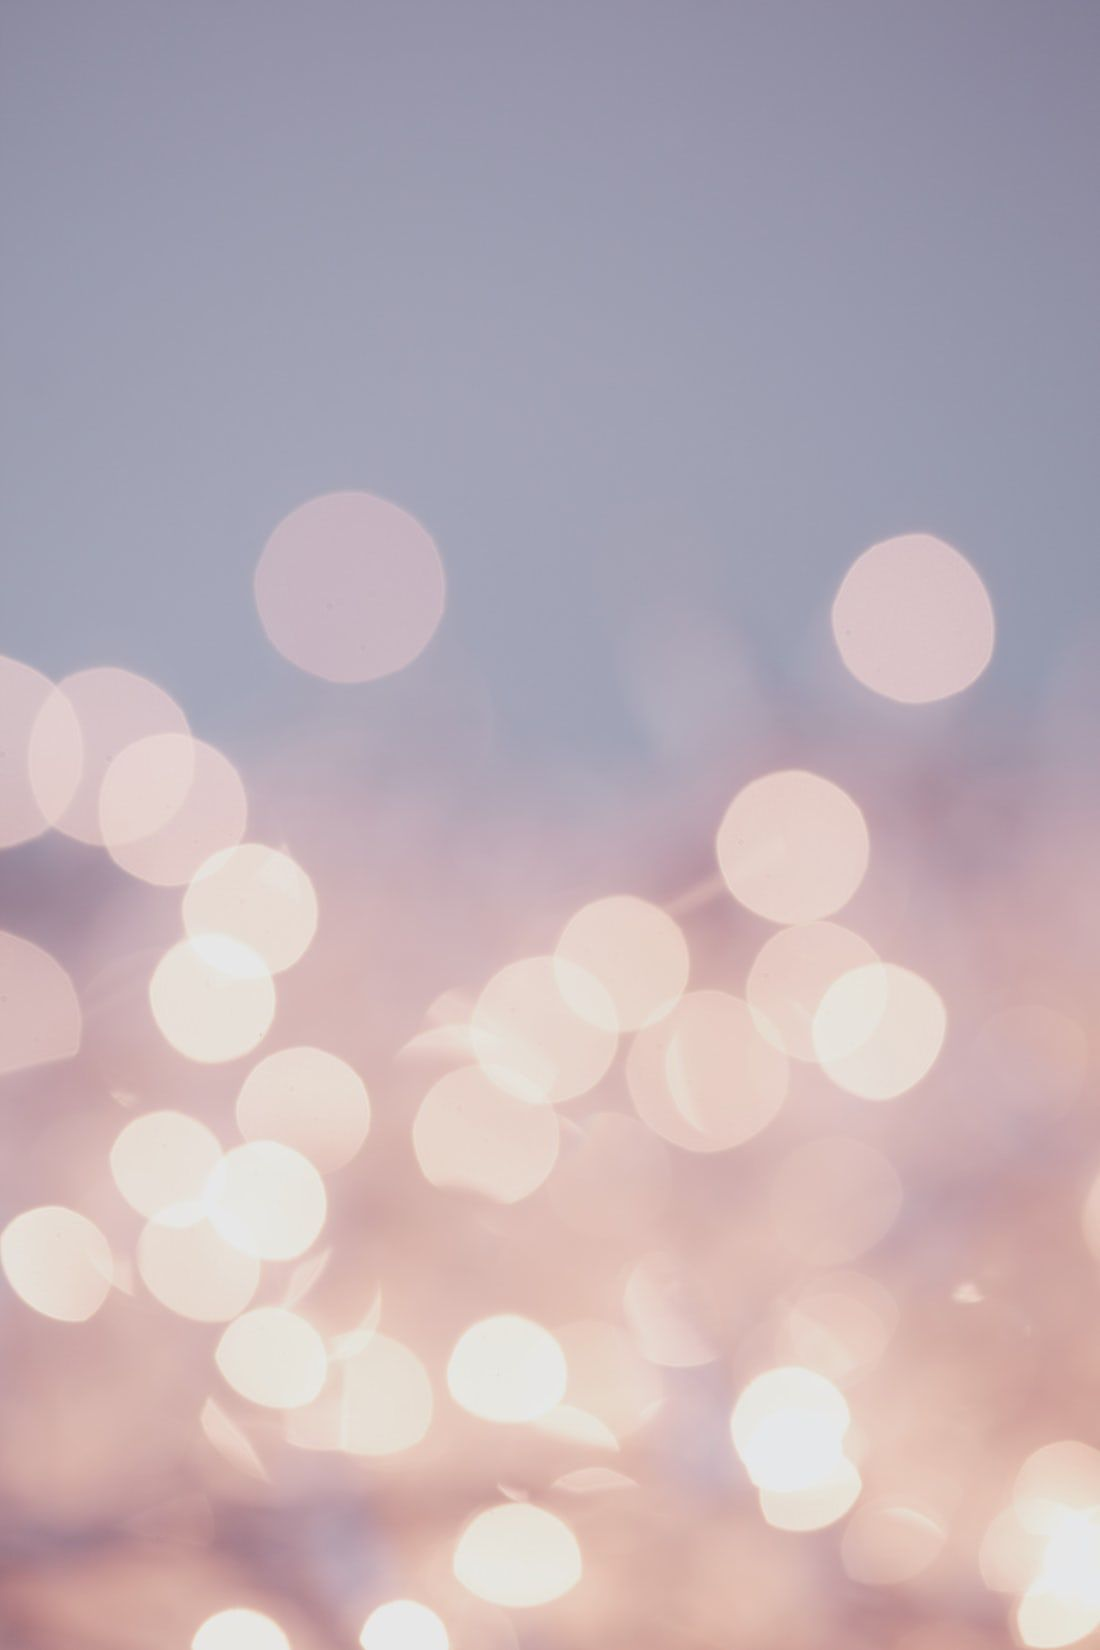 100 Lights Pictures Download Free Images On Unsplash Preppy Wallpaper Pretty Wallpapers Colorful Wallpaper